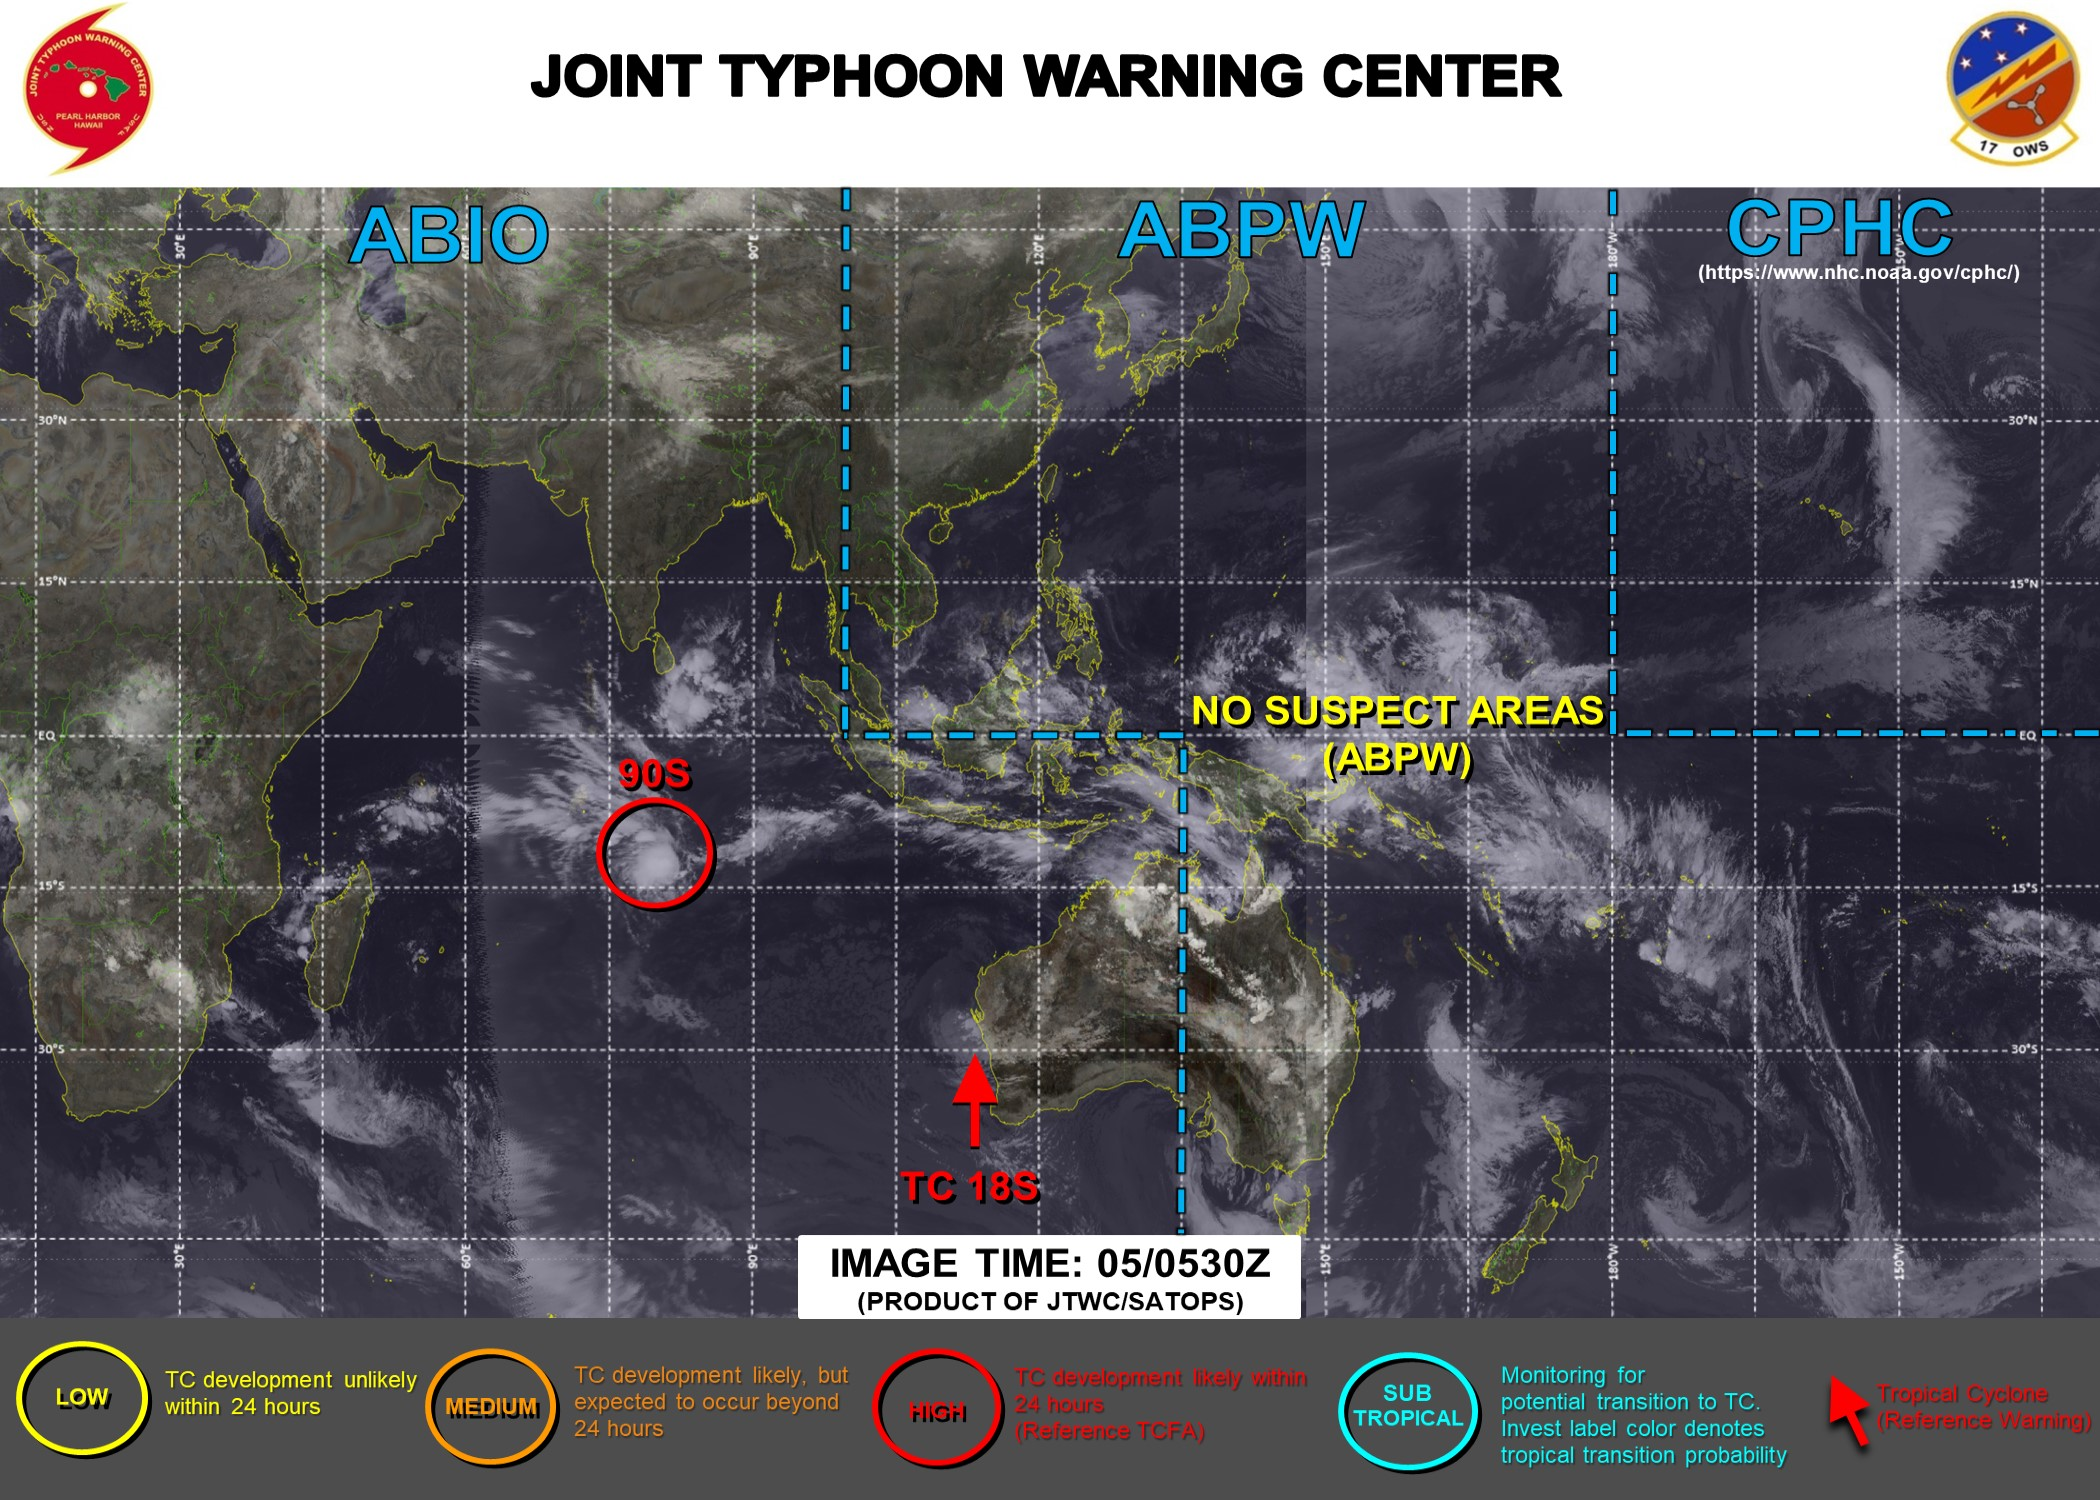 JTWC ISSUED FINAL WARNING ON 18S(NONAME) AT 05/03UTC. A TCFA IS ISSUED AT 05/06UTC FOR INVEST 90S. 3HOURLY SATELLITE BULLETINS ARE PROVIDED FOR BOTH SYSTEMS.